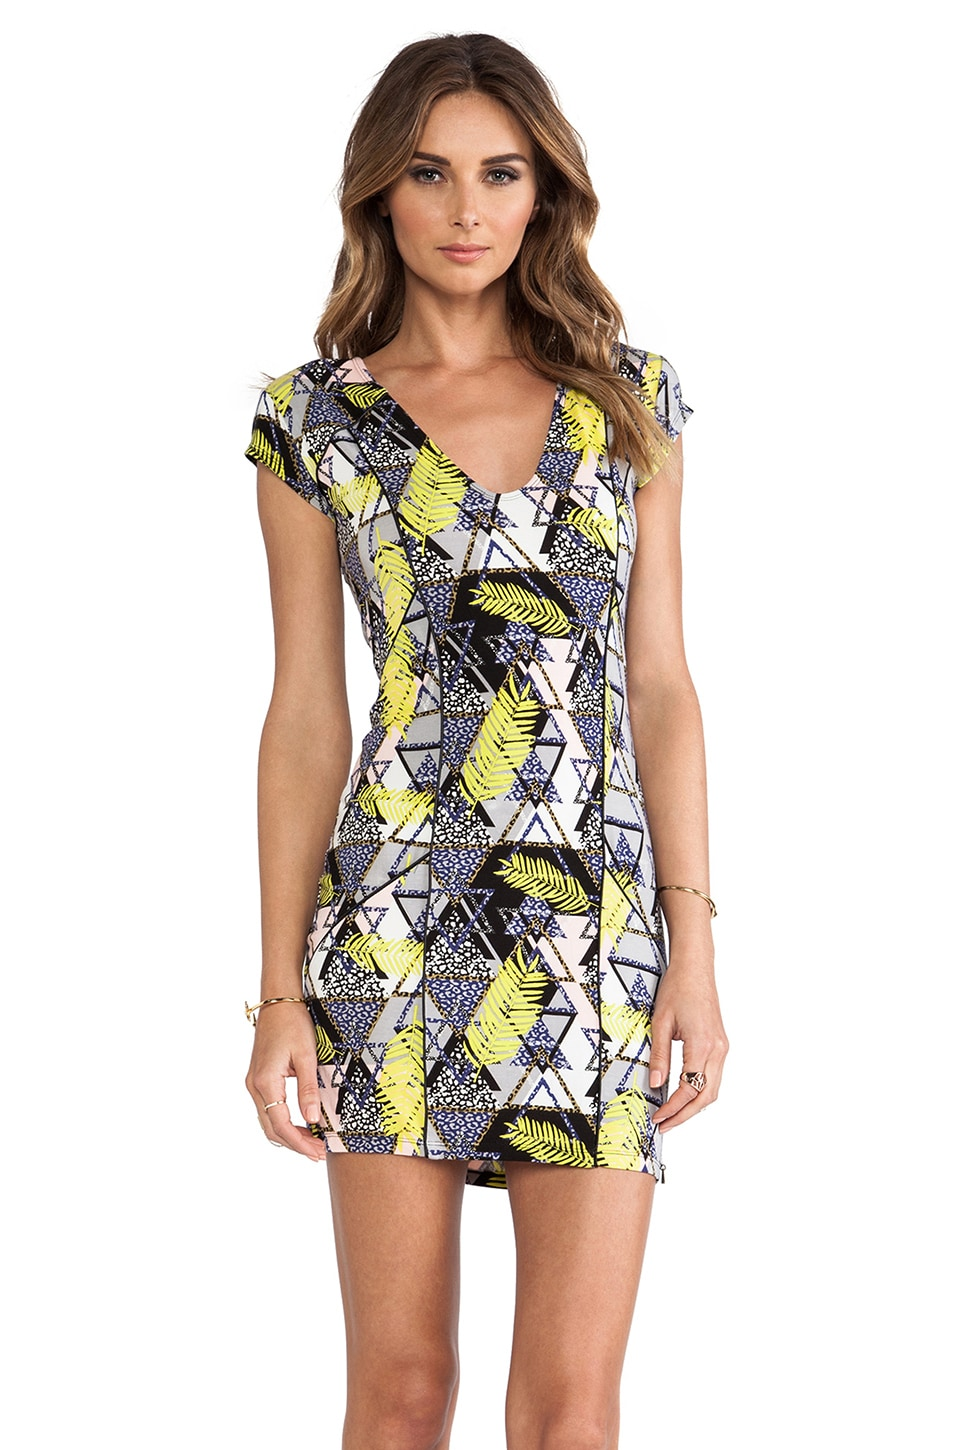 Tallow Neon Blonde Dress in Trop